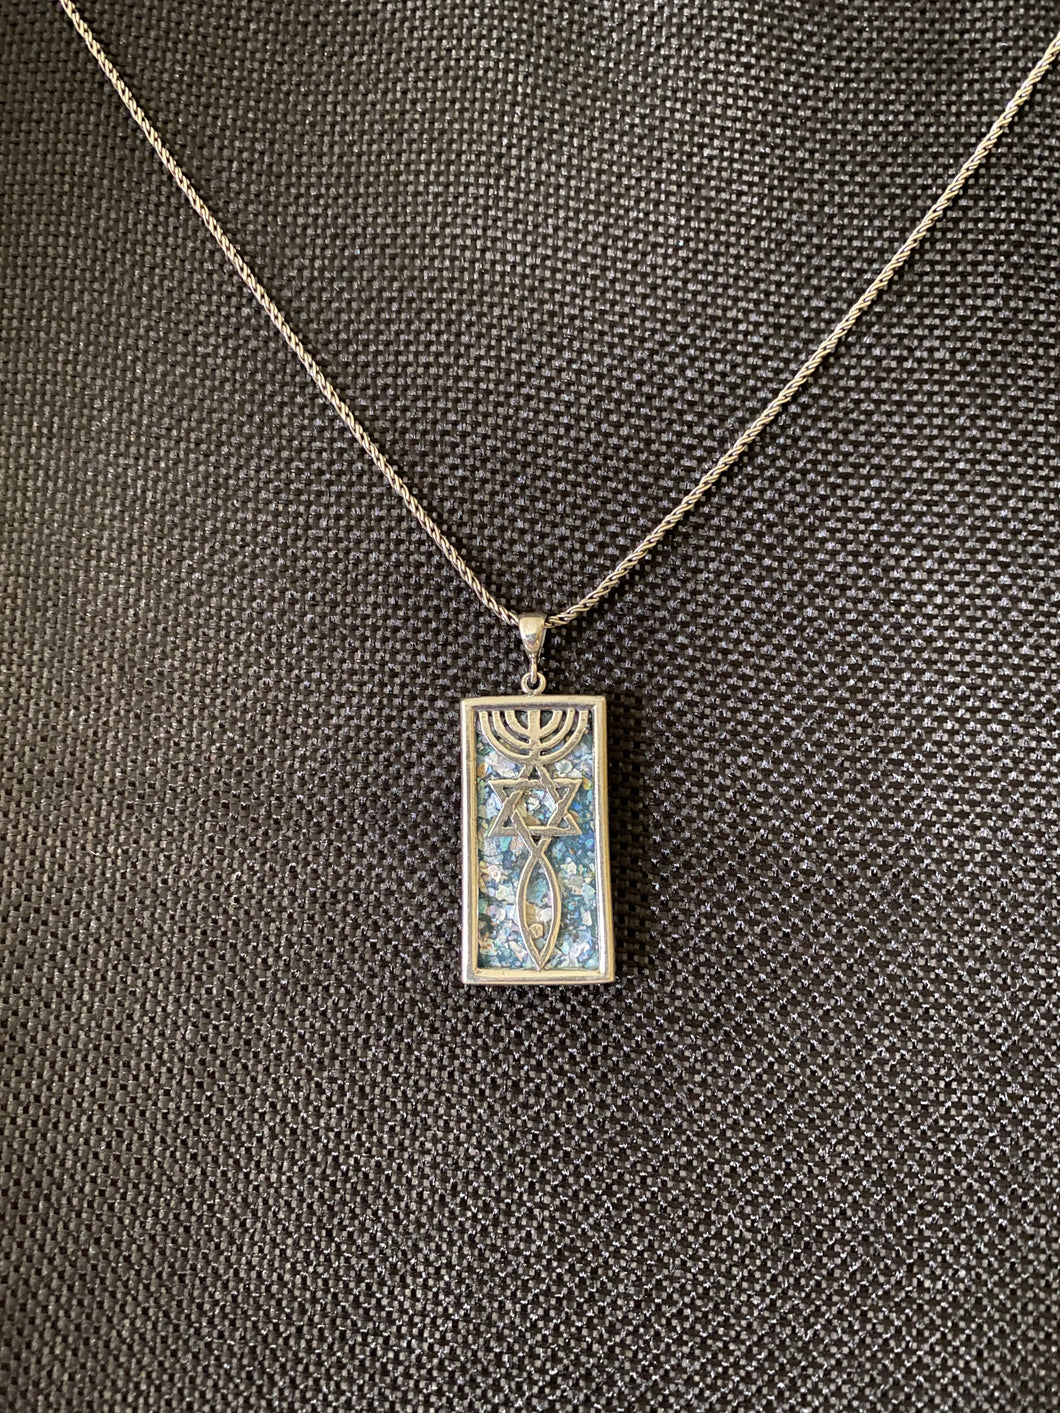 Silver Roman Glass Necklace SRGN0029